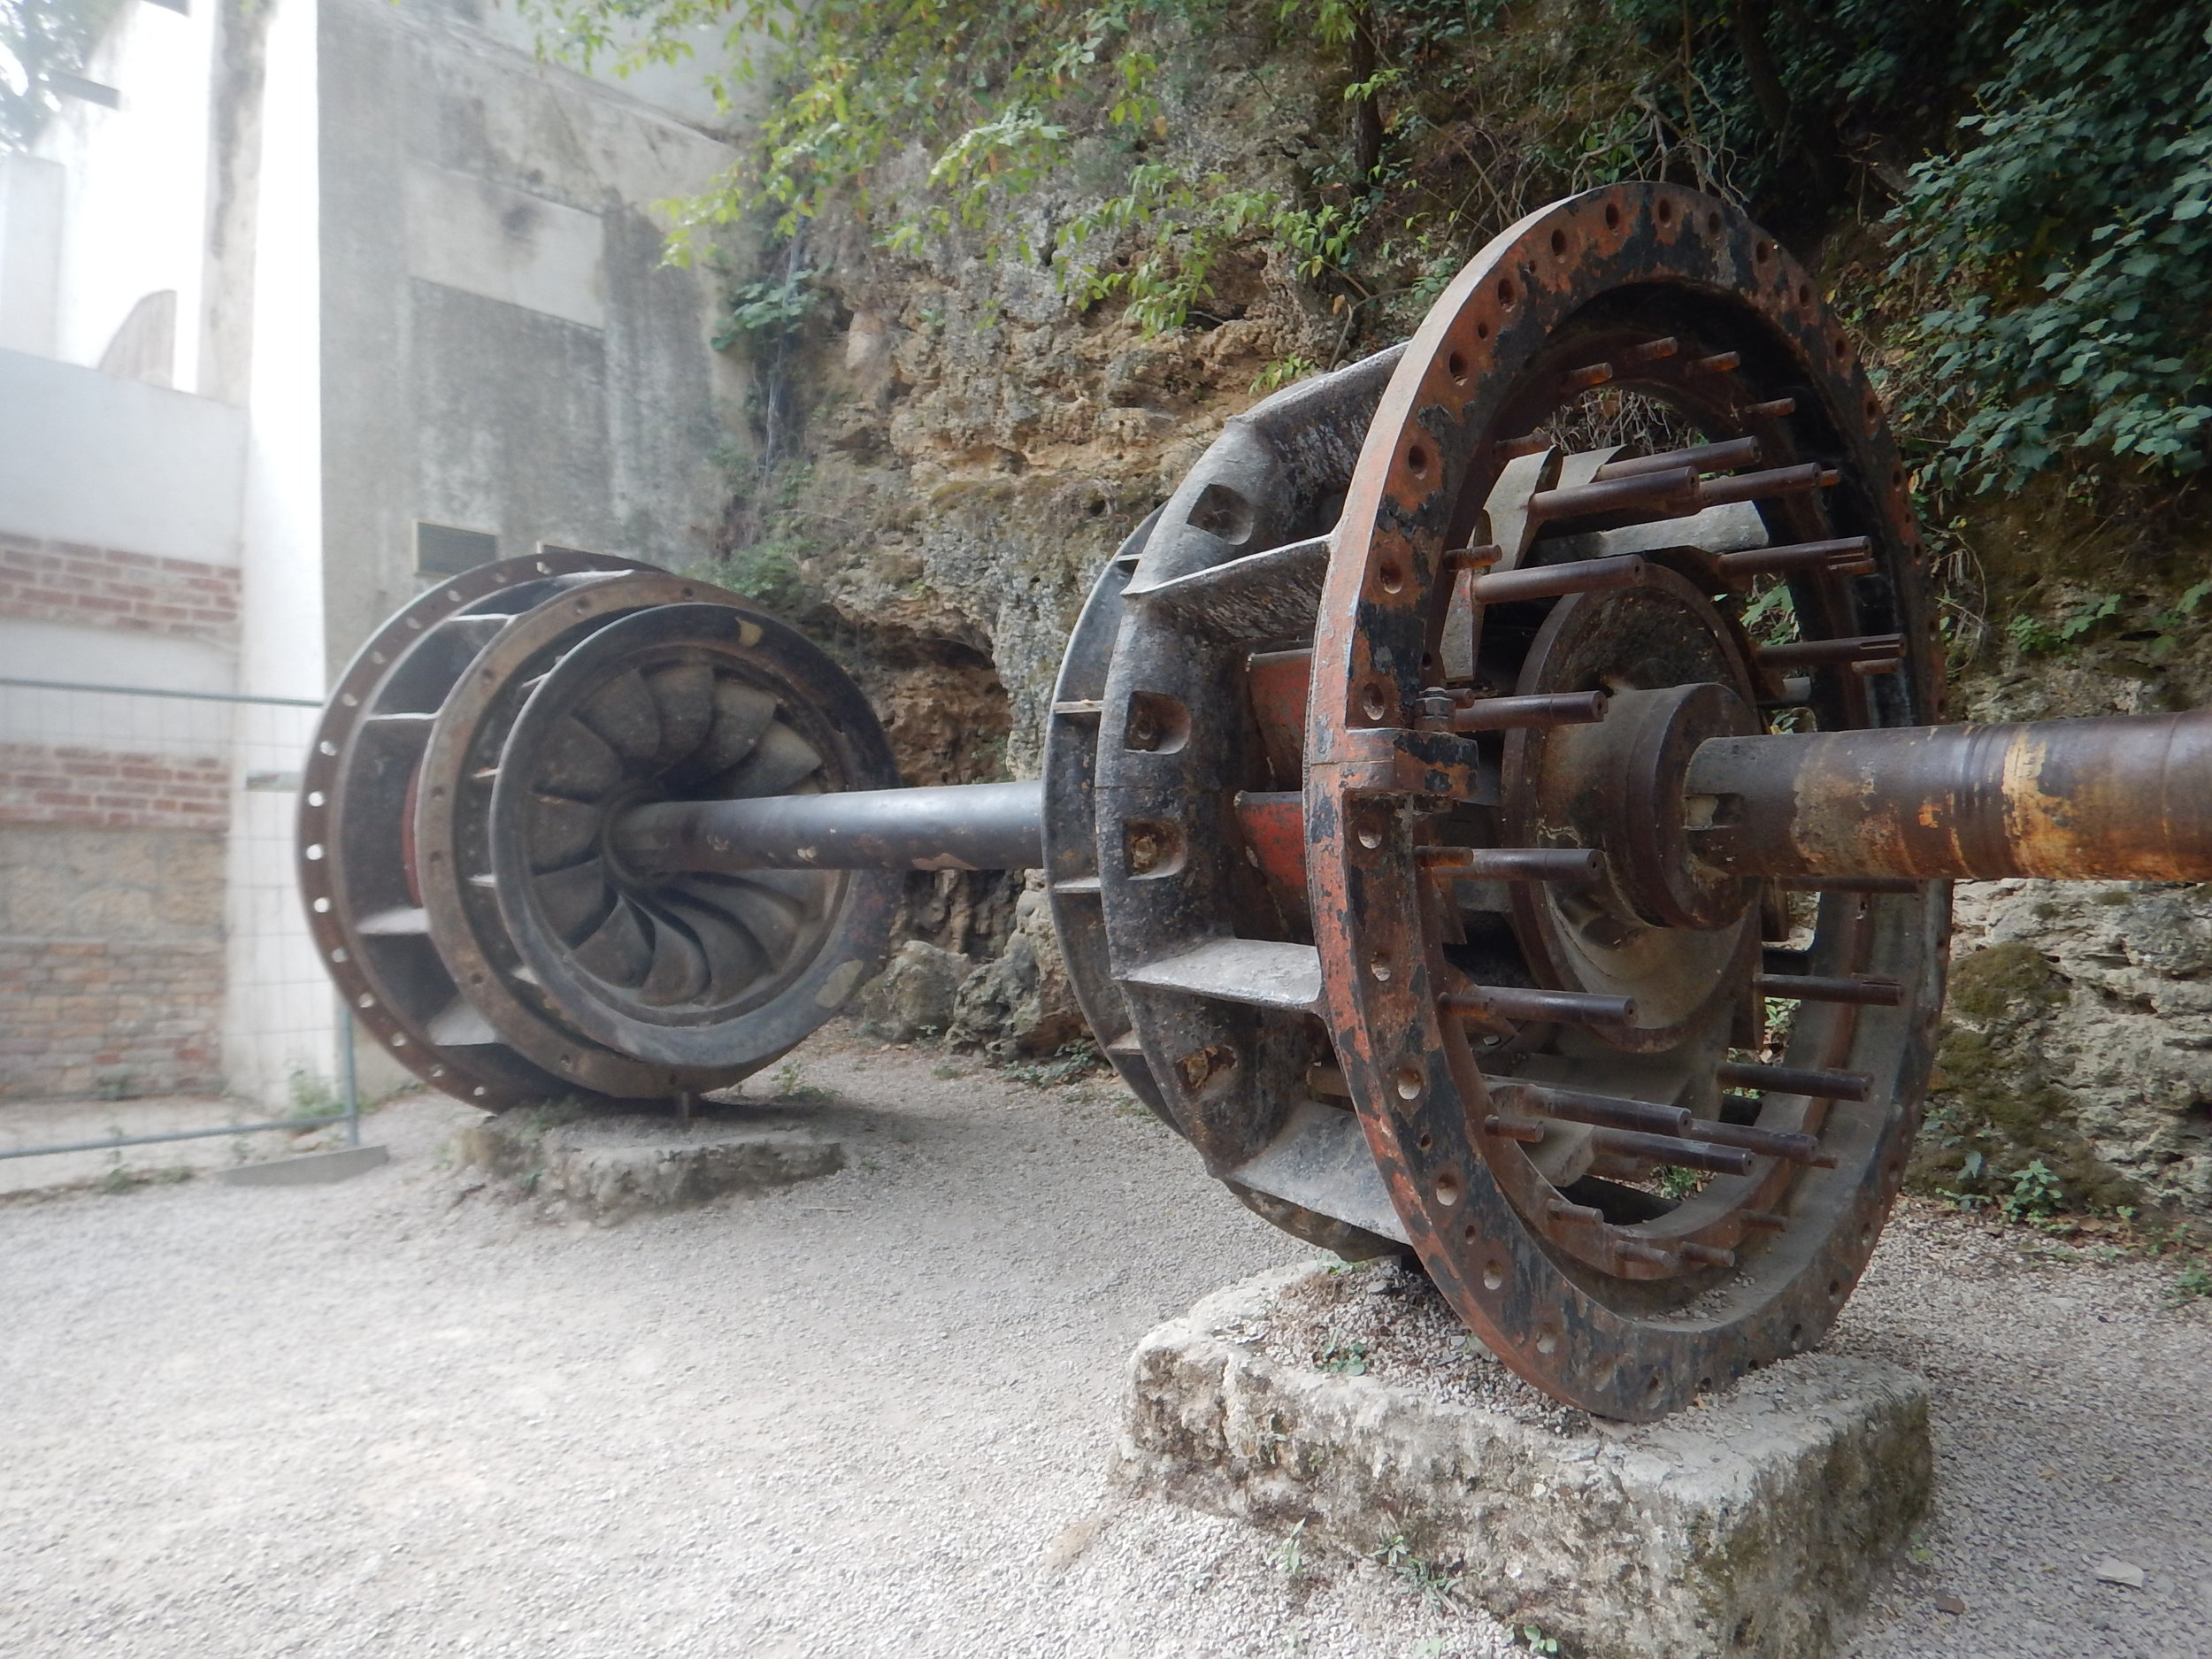 The remains of his hydro power plant